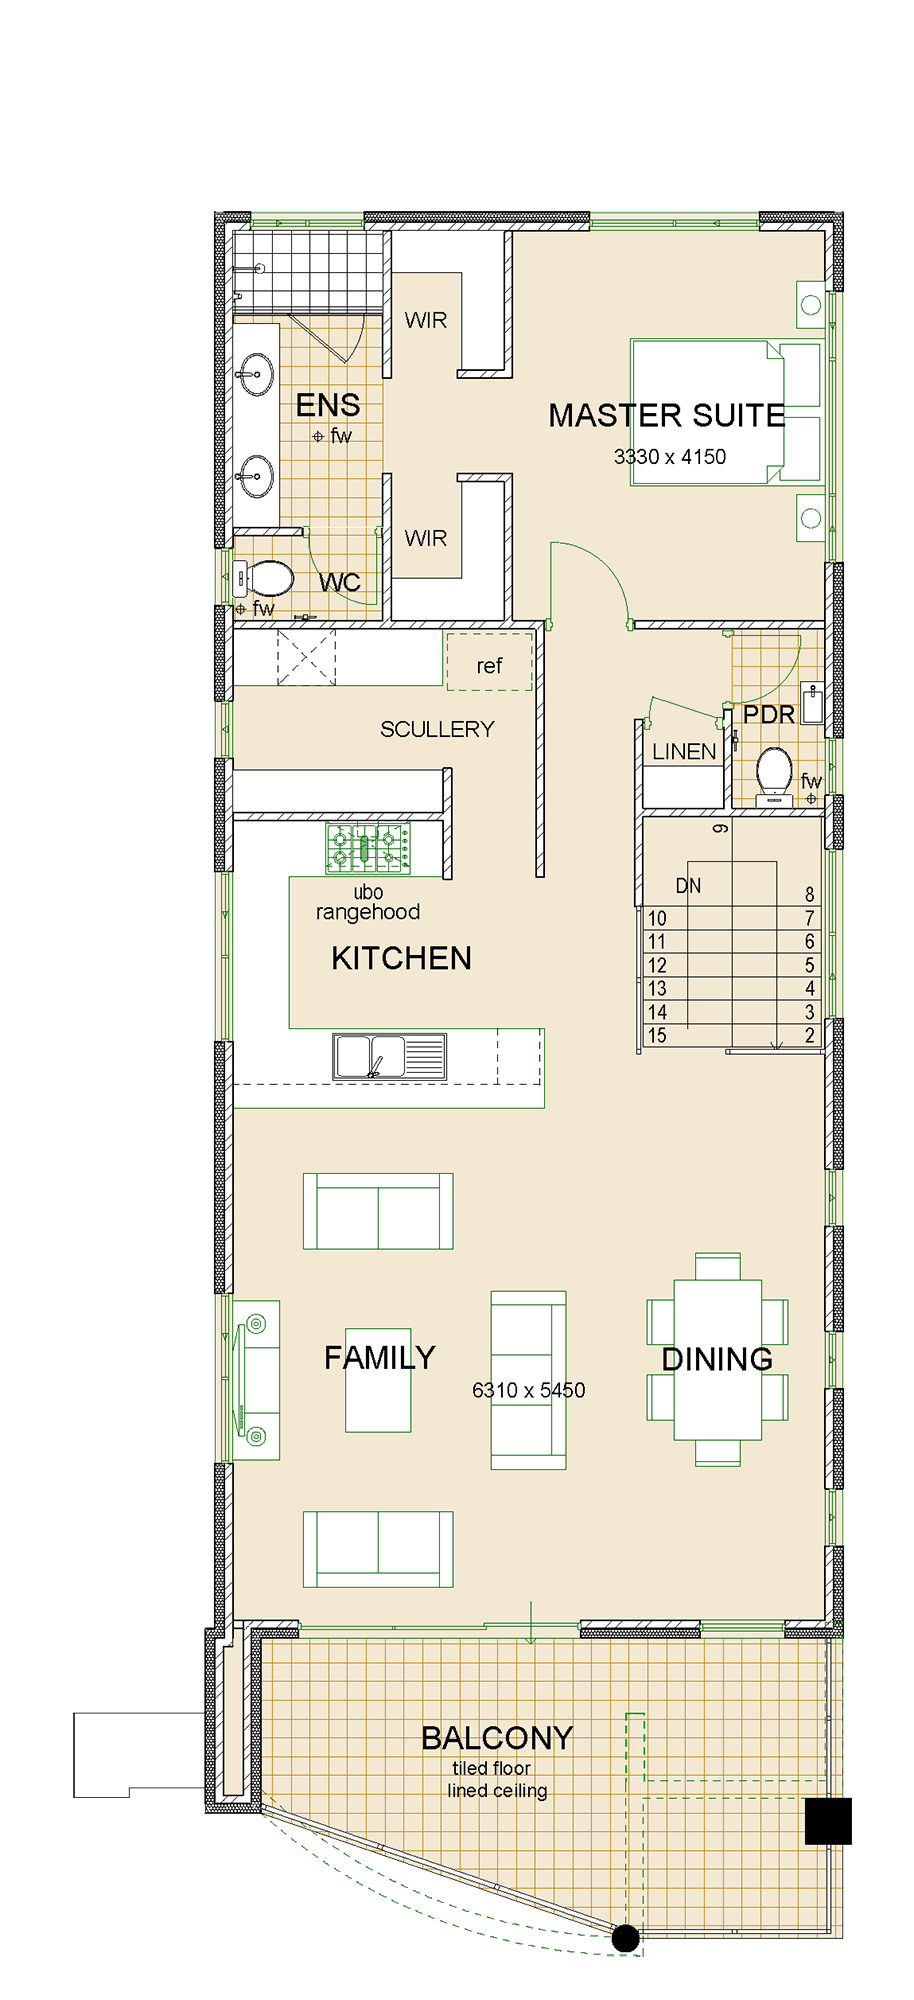 Virage house plan sample